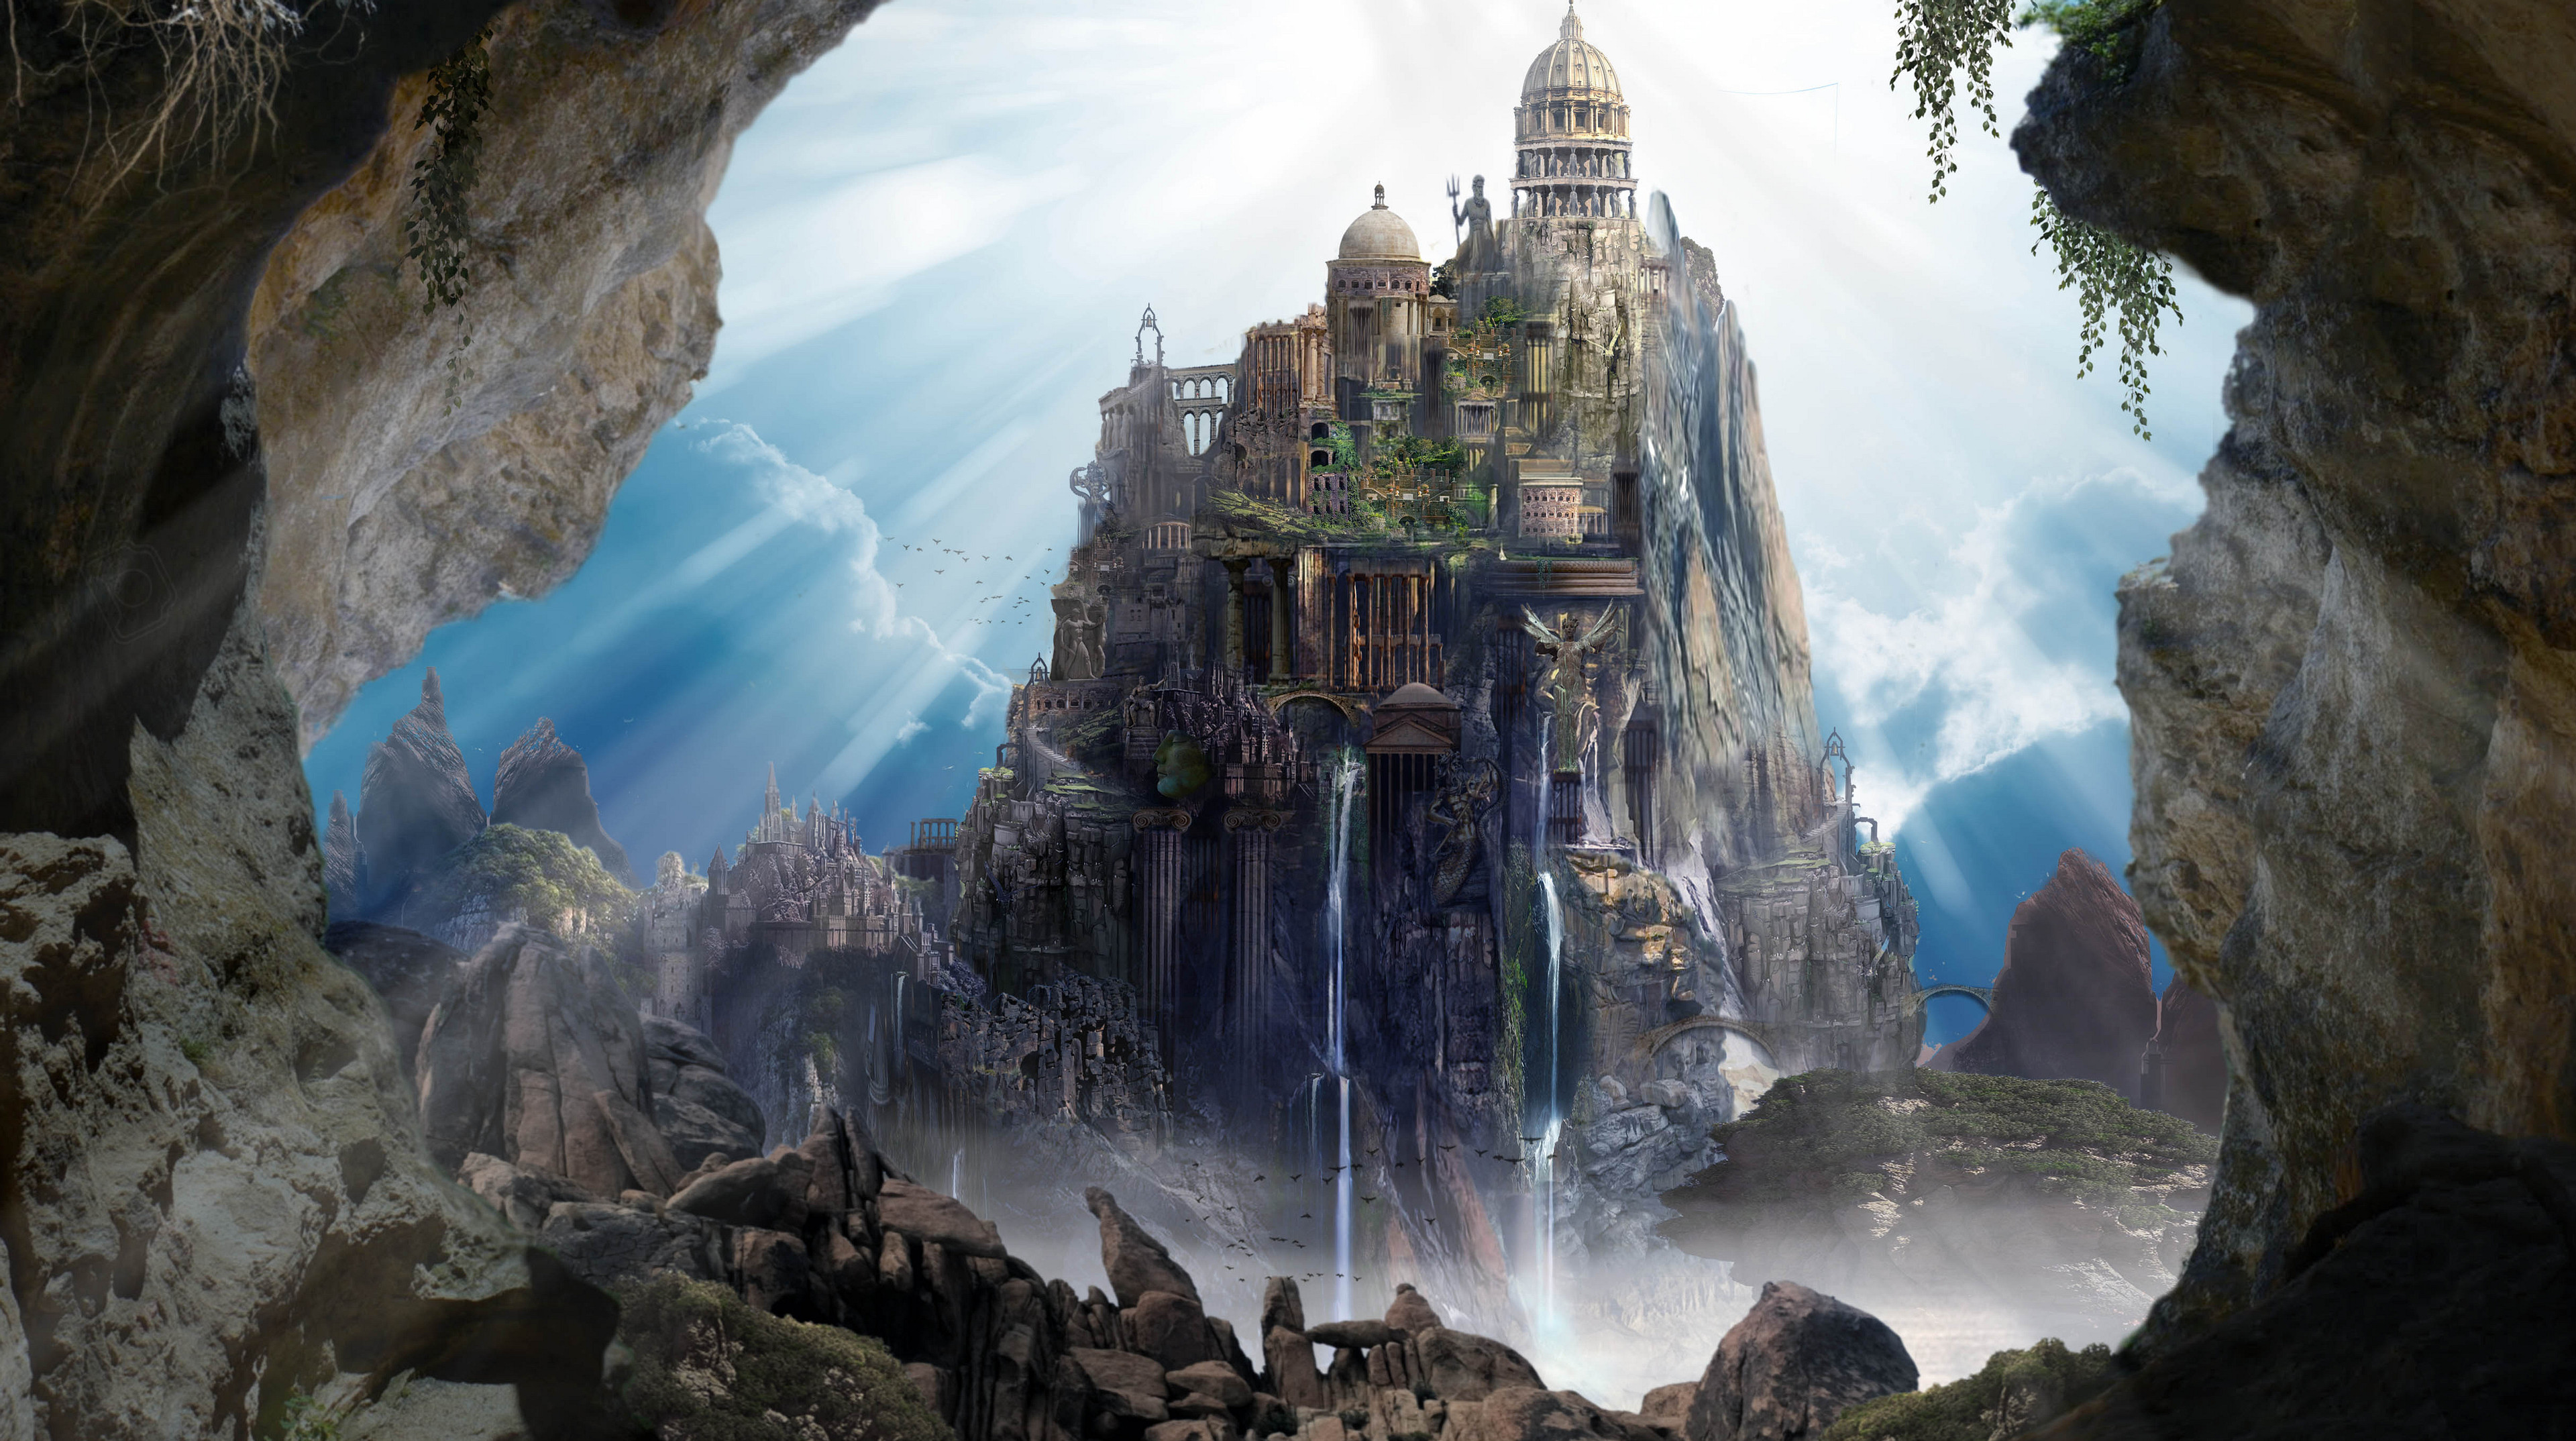 Mount Olympus Pre-Concept Look - Once Upon  a Time Season 5